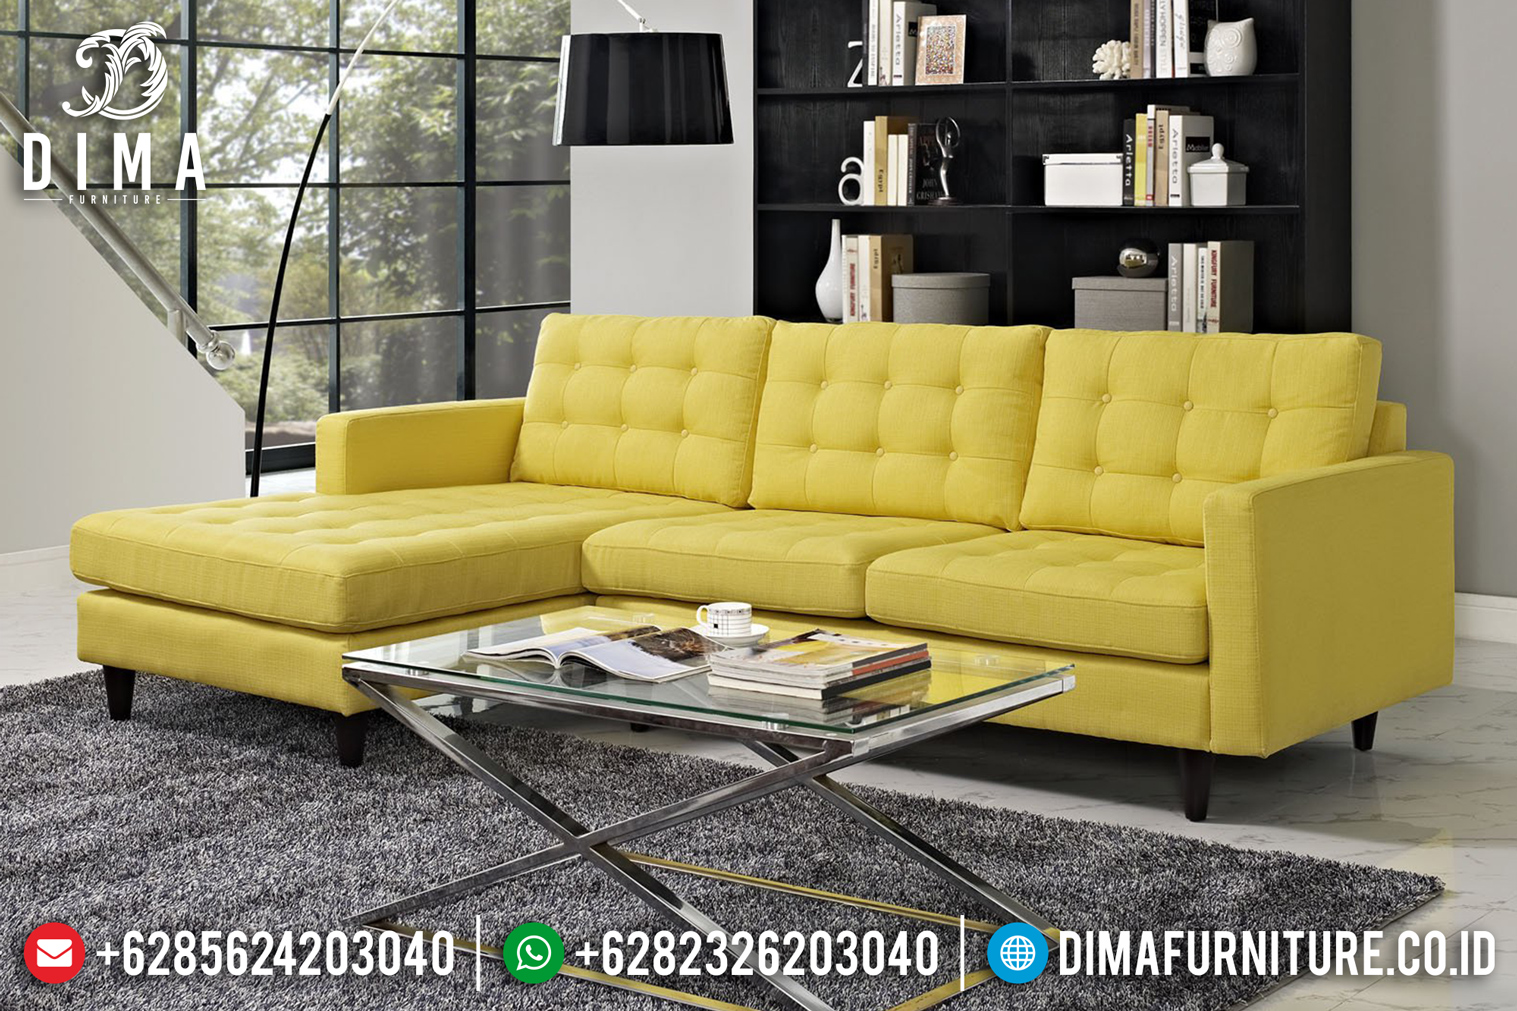 Model Warren Set Sofa Tamu Minimalis Jepara Mewah Cover Kuning ST-0666